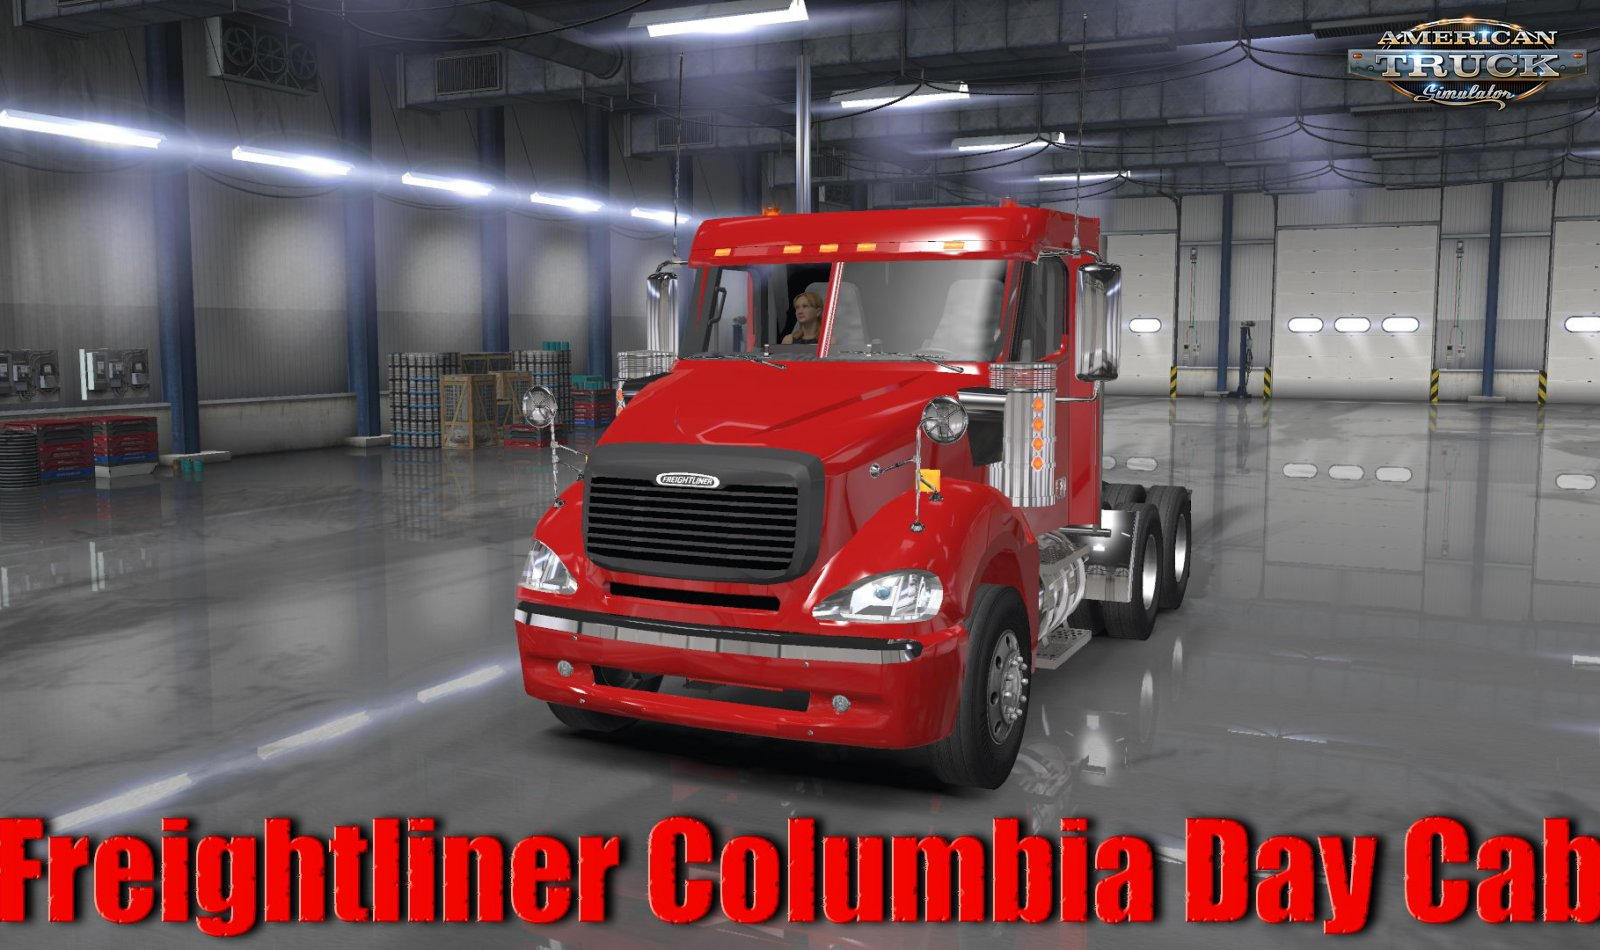 Freightliner Columbia Day Cab + Interior v1.0 (1.36.x)